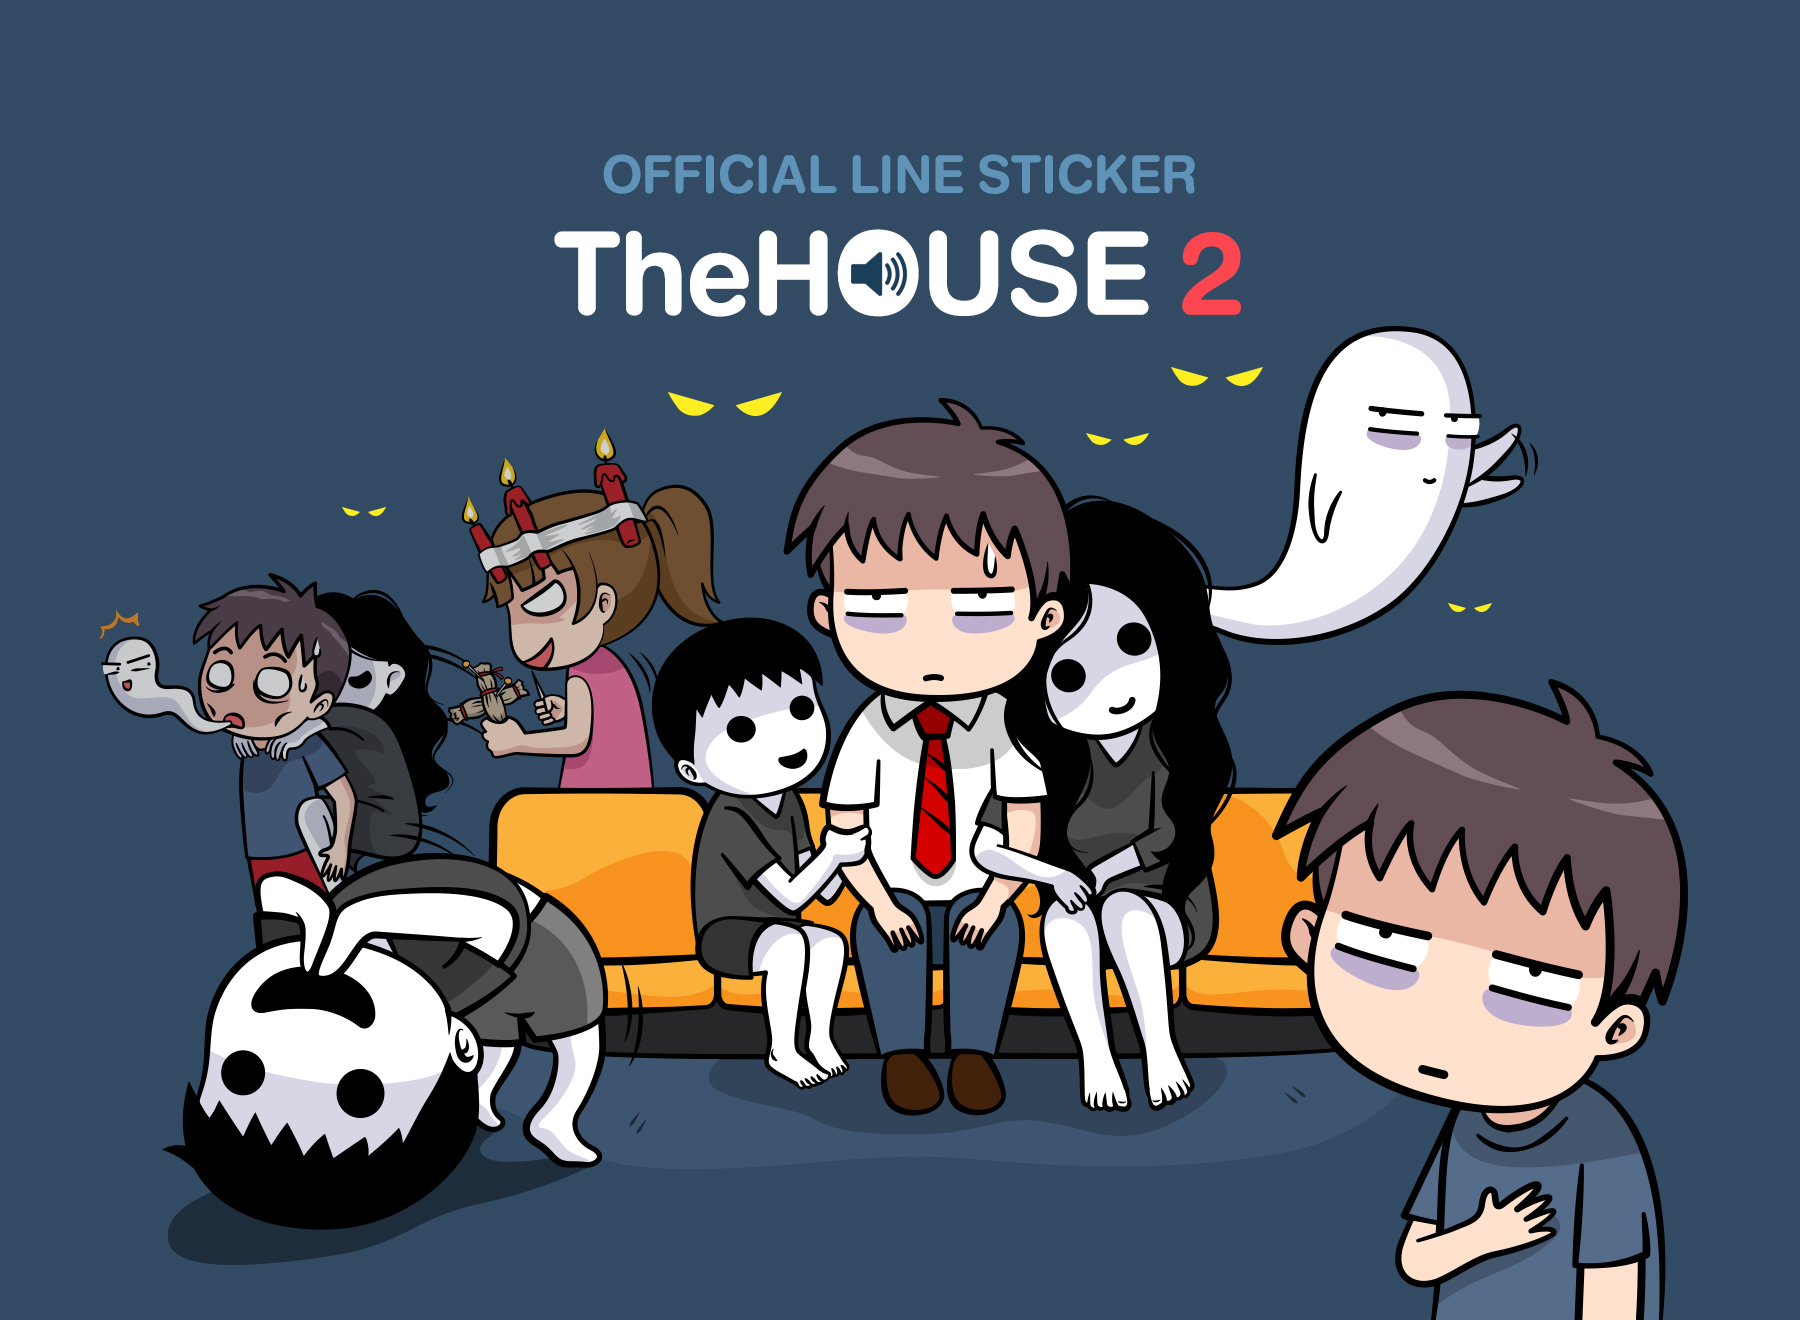 Game Of The Year >> LINE Sticker TheHOUSE 2 – SINTHAIstudio.com